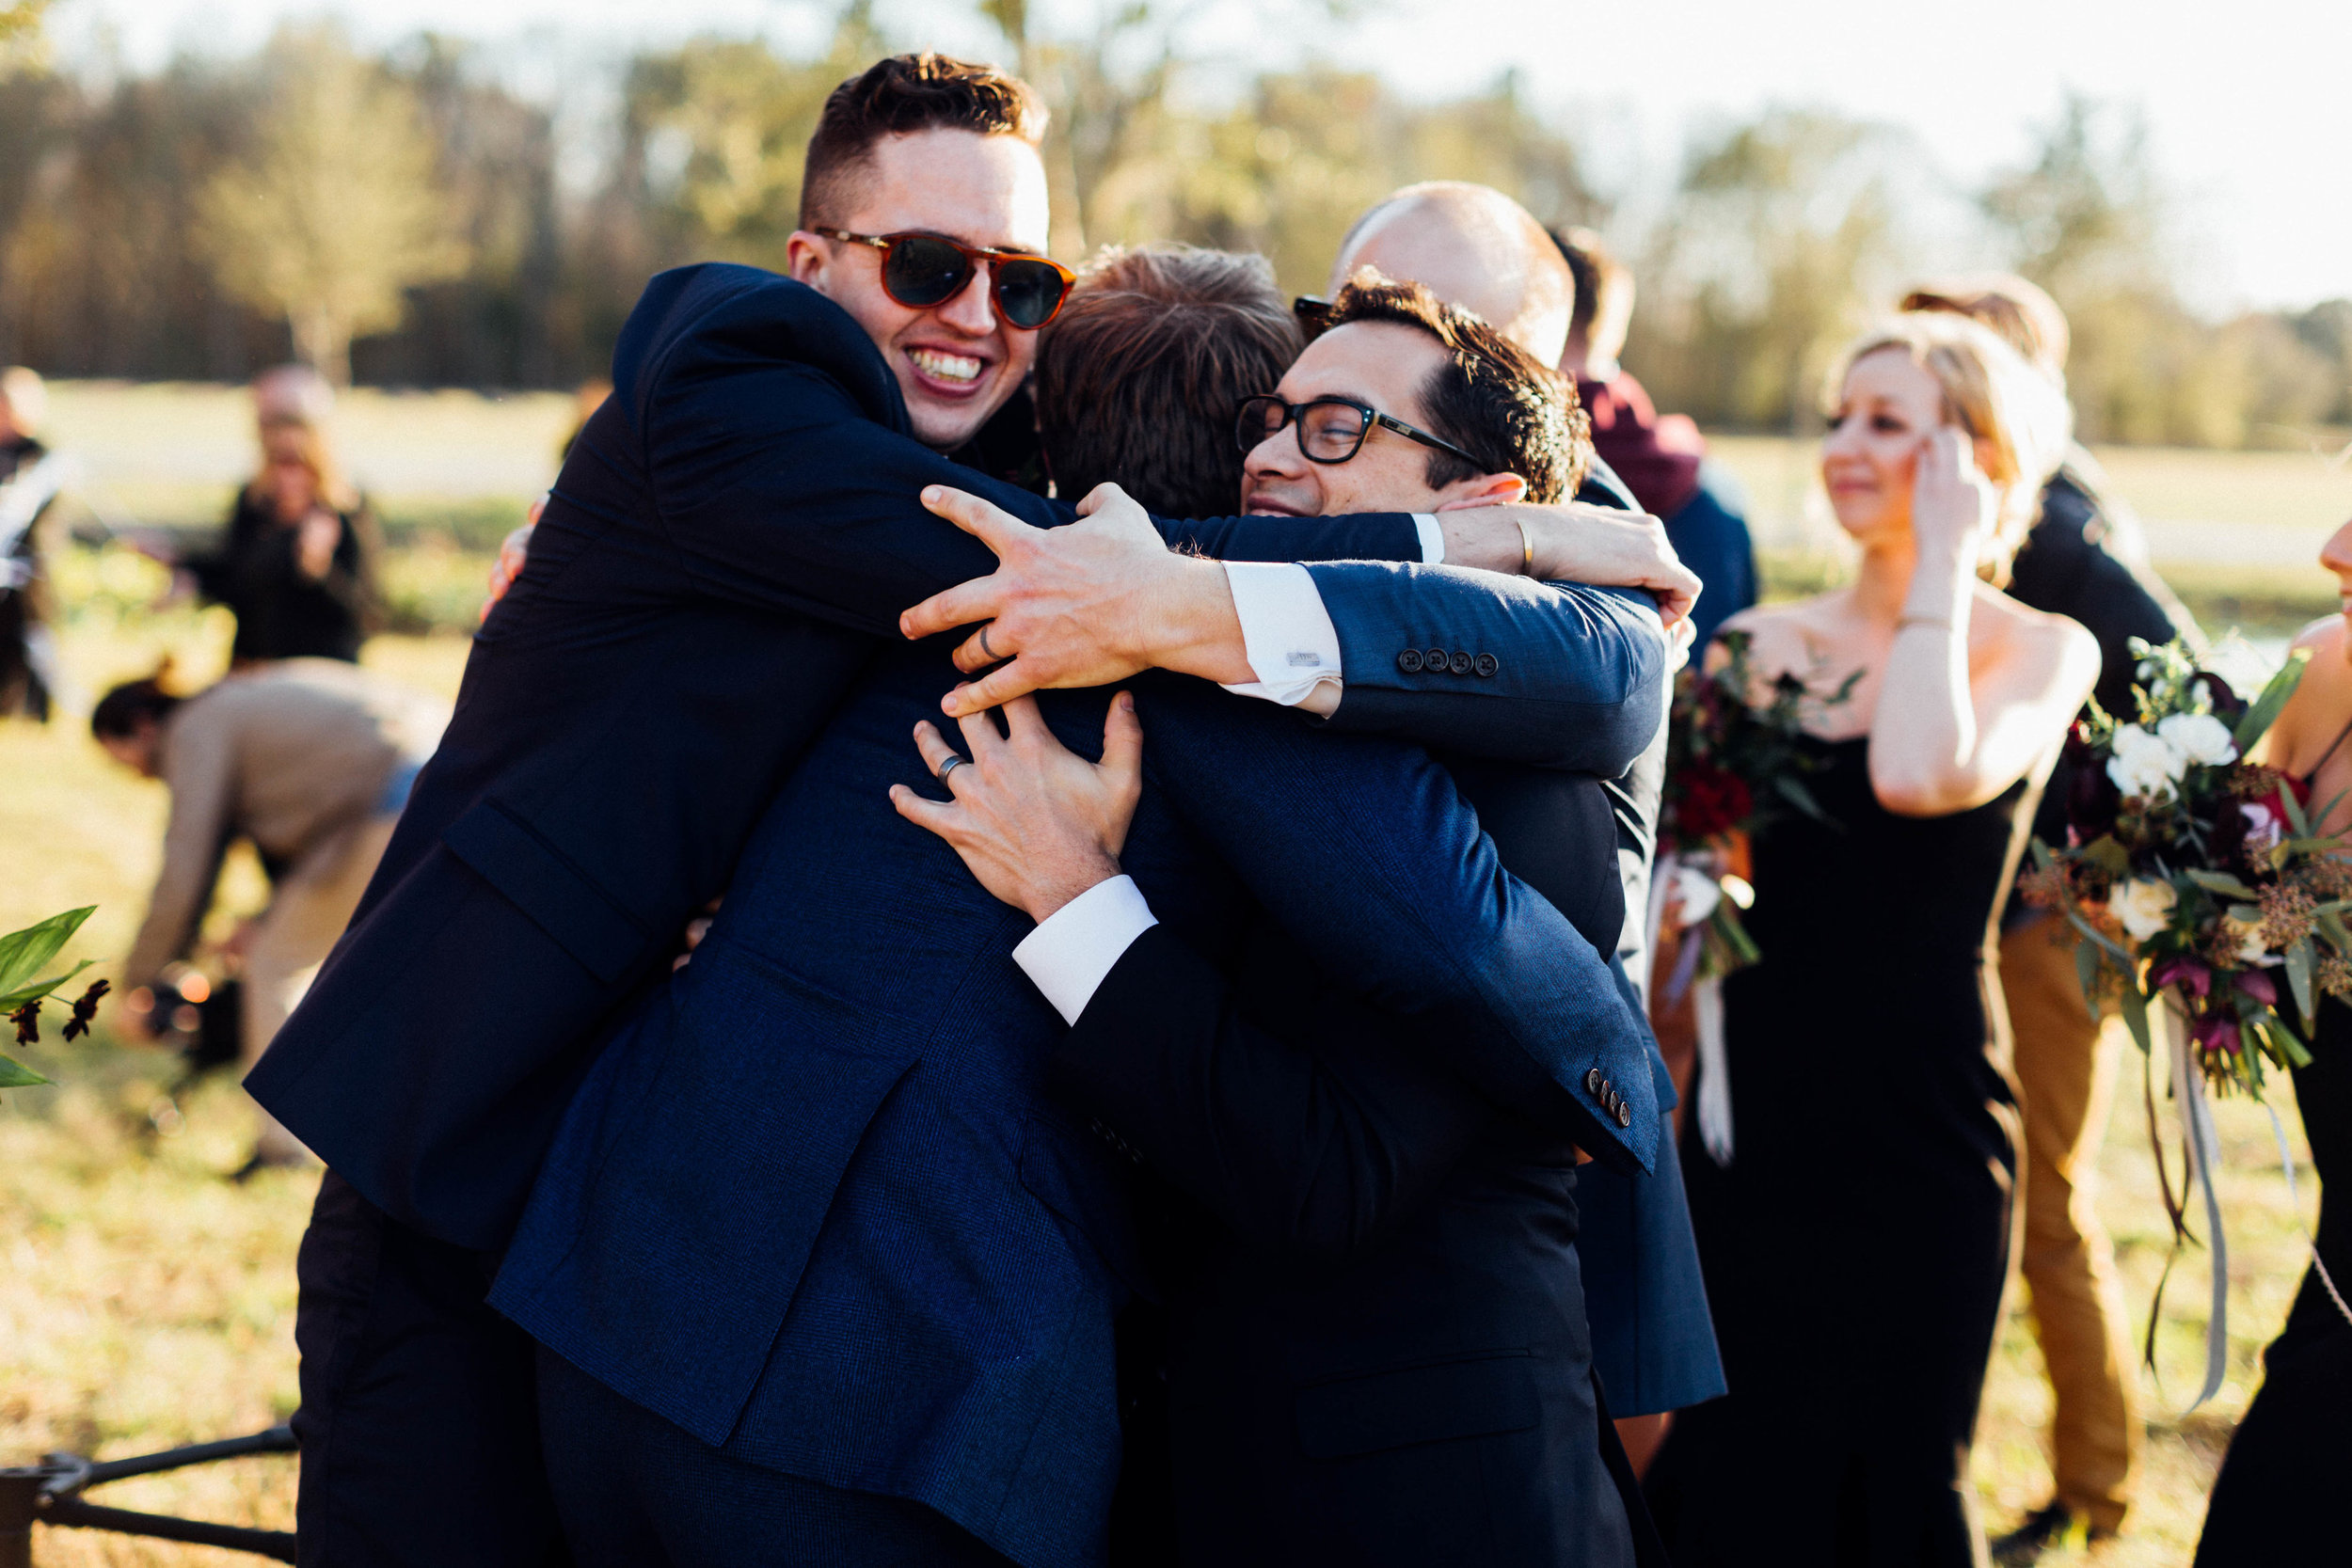 christinakarstphotography_jacksonvillewedding_congareeandpennwedding_london+liam-222.jpg